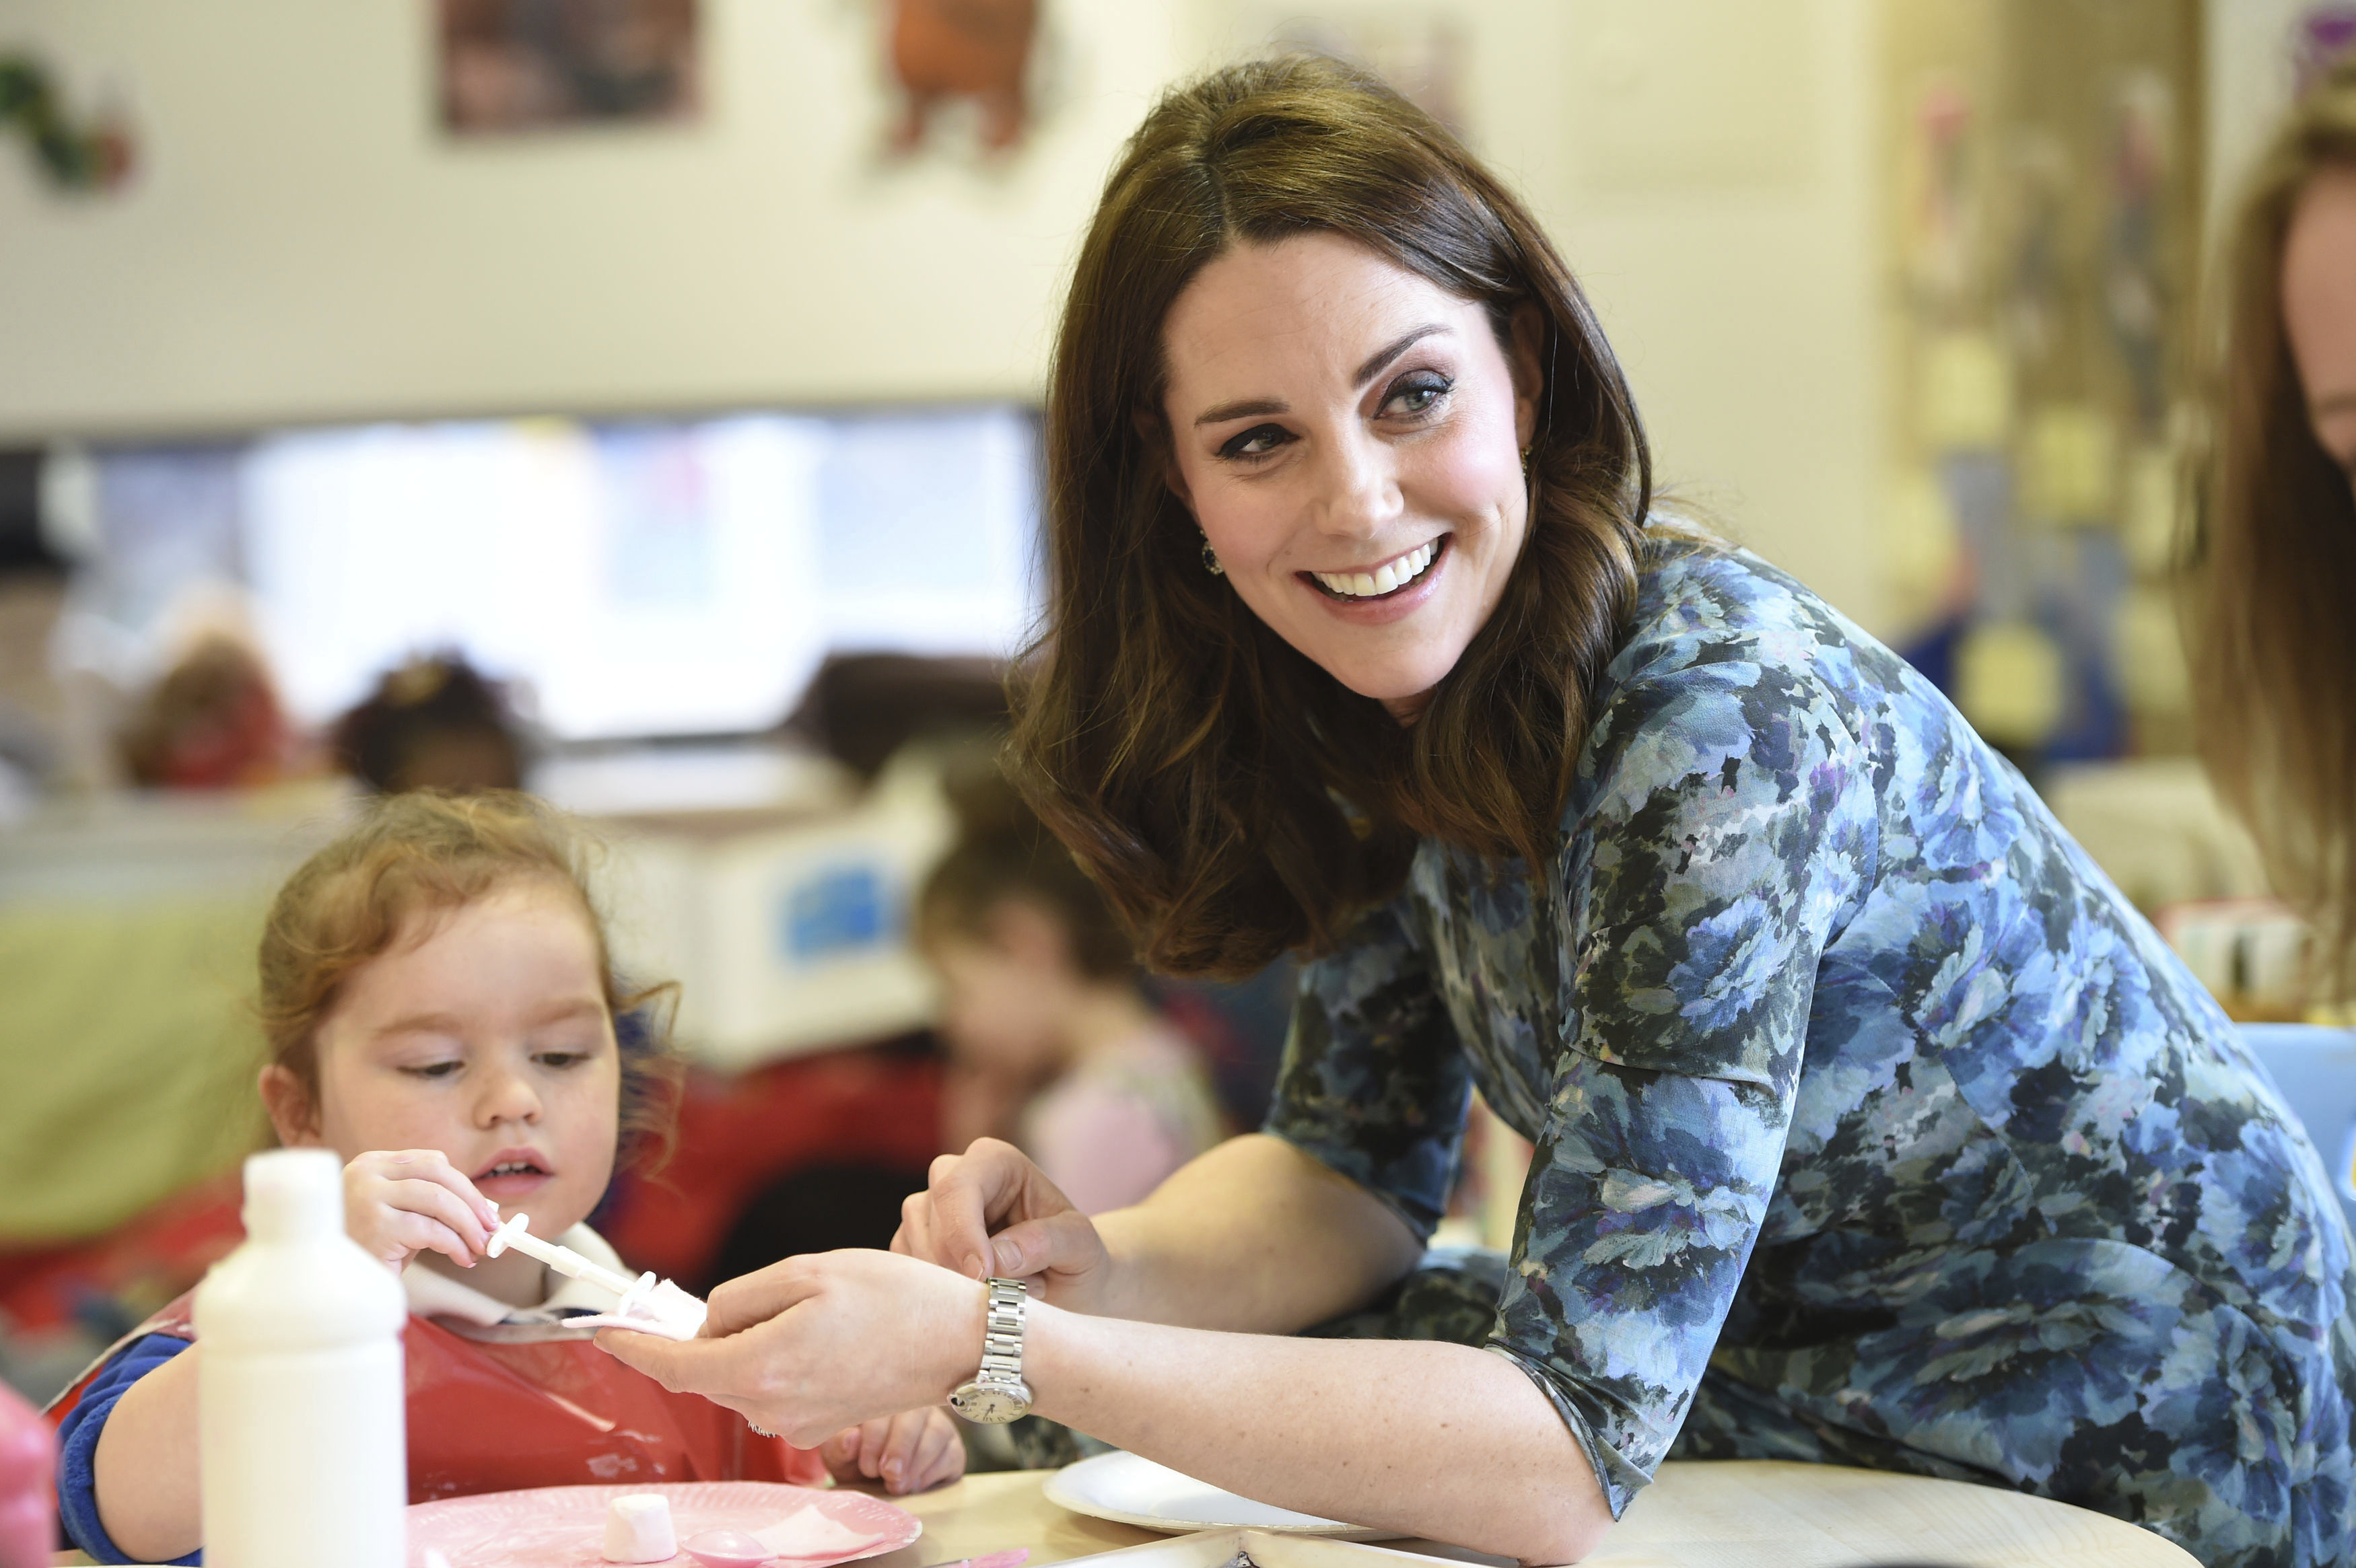 "<div class=""meta image-caption""><div class=""origin-logo origin-image ap""><span>AP</span></div><span class=""caption-text"">Kate, Duchess of Cambridge smiles as she interacts with children Wednesday Jan. 10, 2018 during a visit to the Reach Academy Feltham, in London. (Eddie Mulholland/Pool Photo via AP)</span></div>"